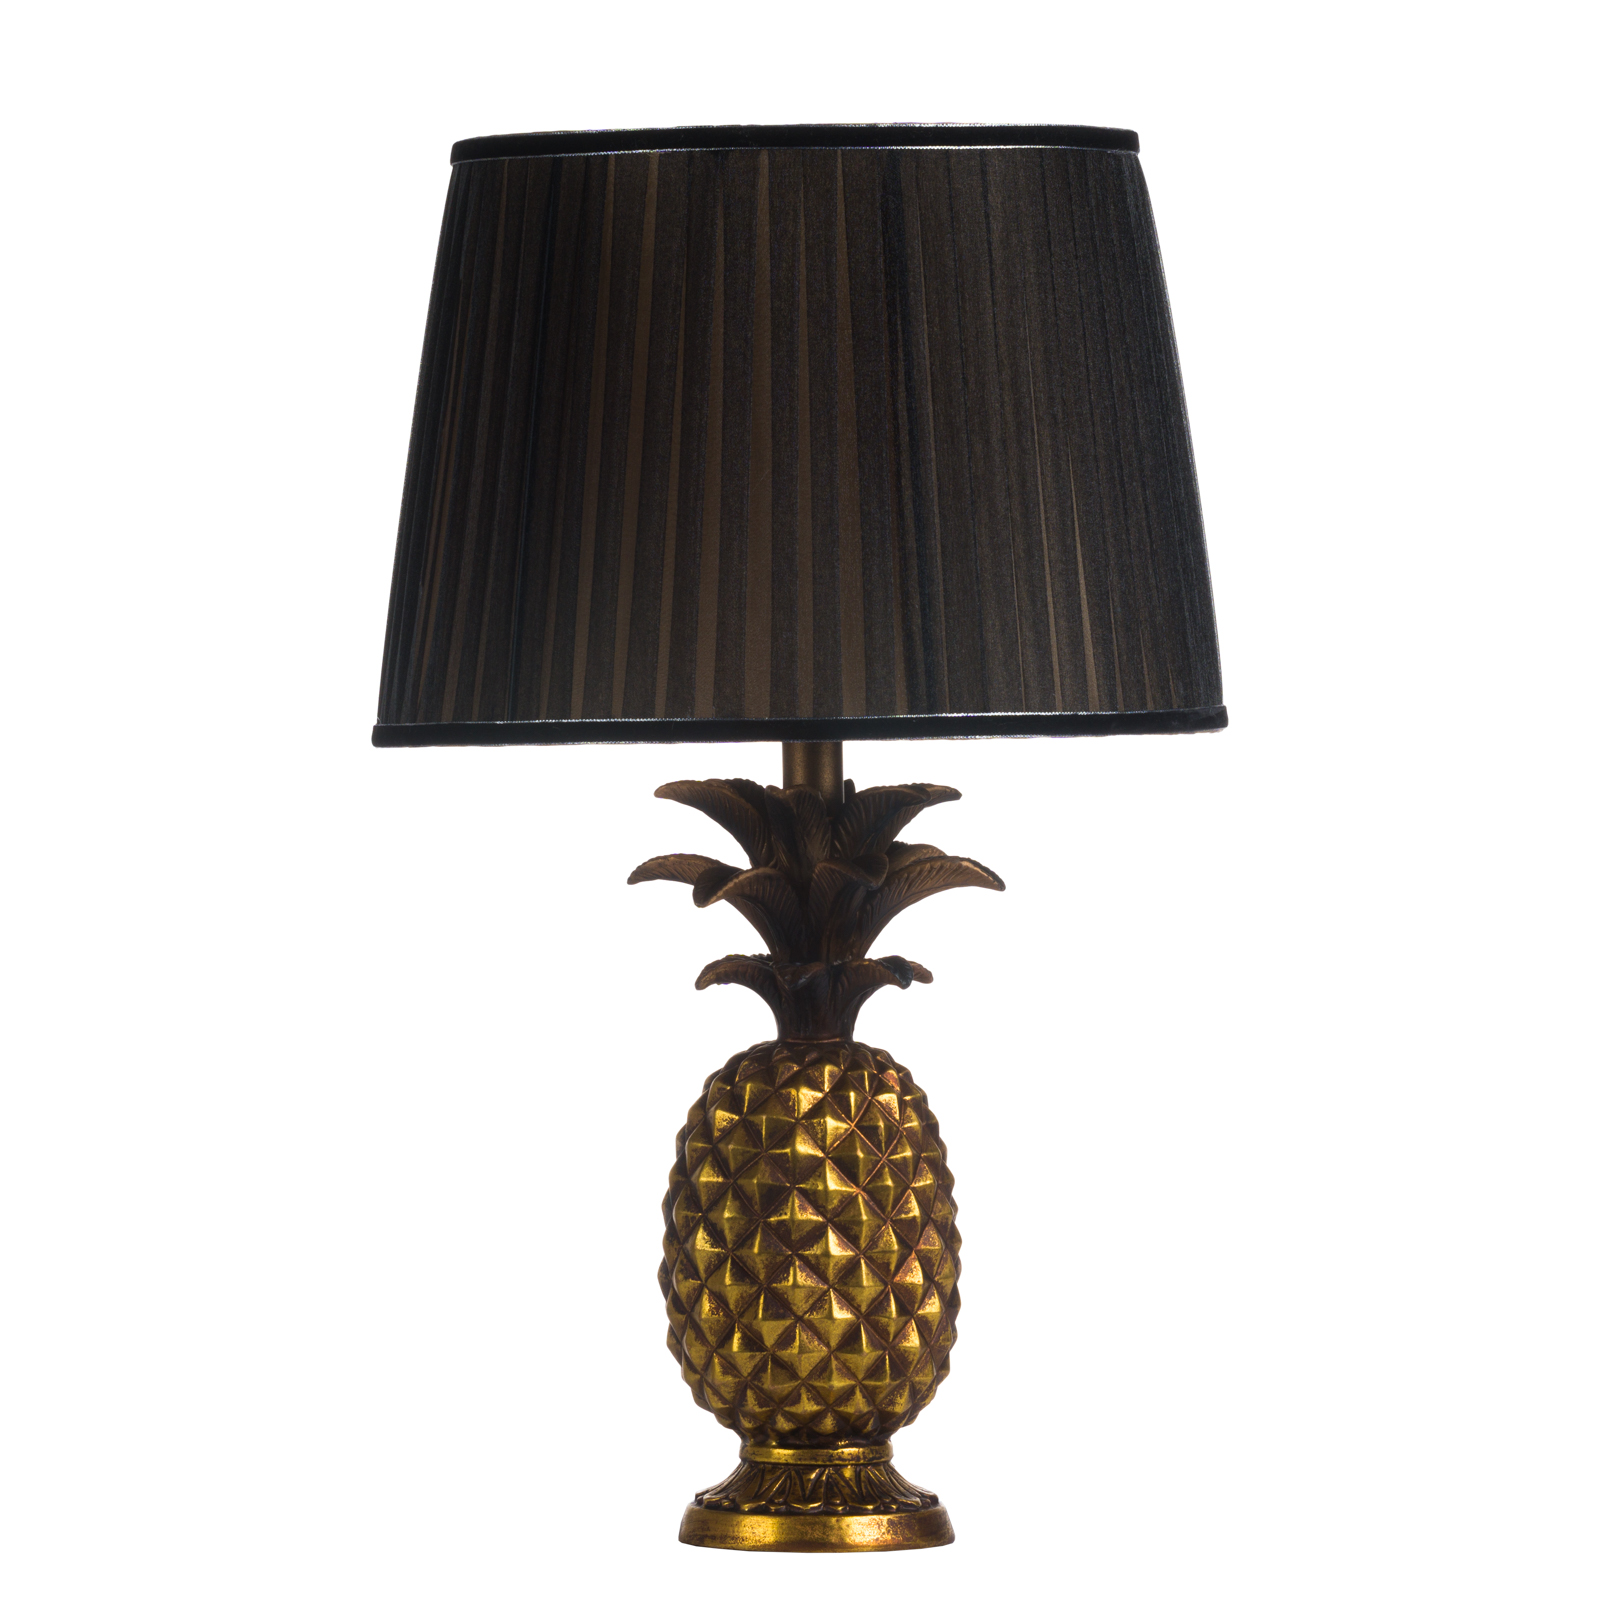 Isla Pineapple Table Lamp